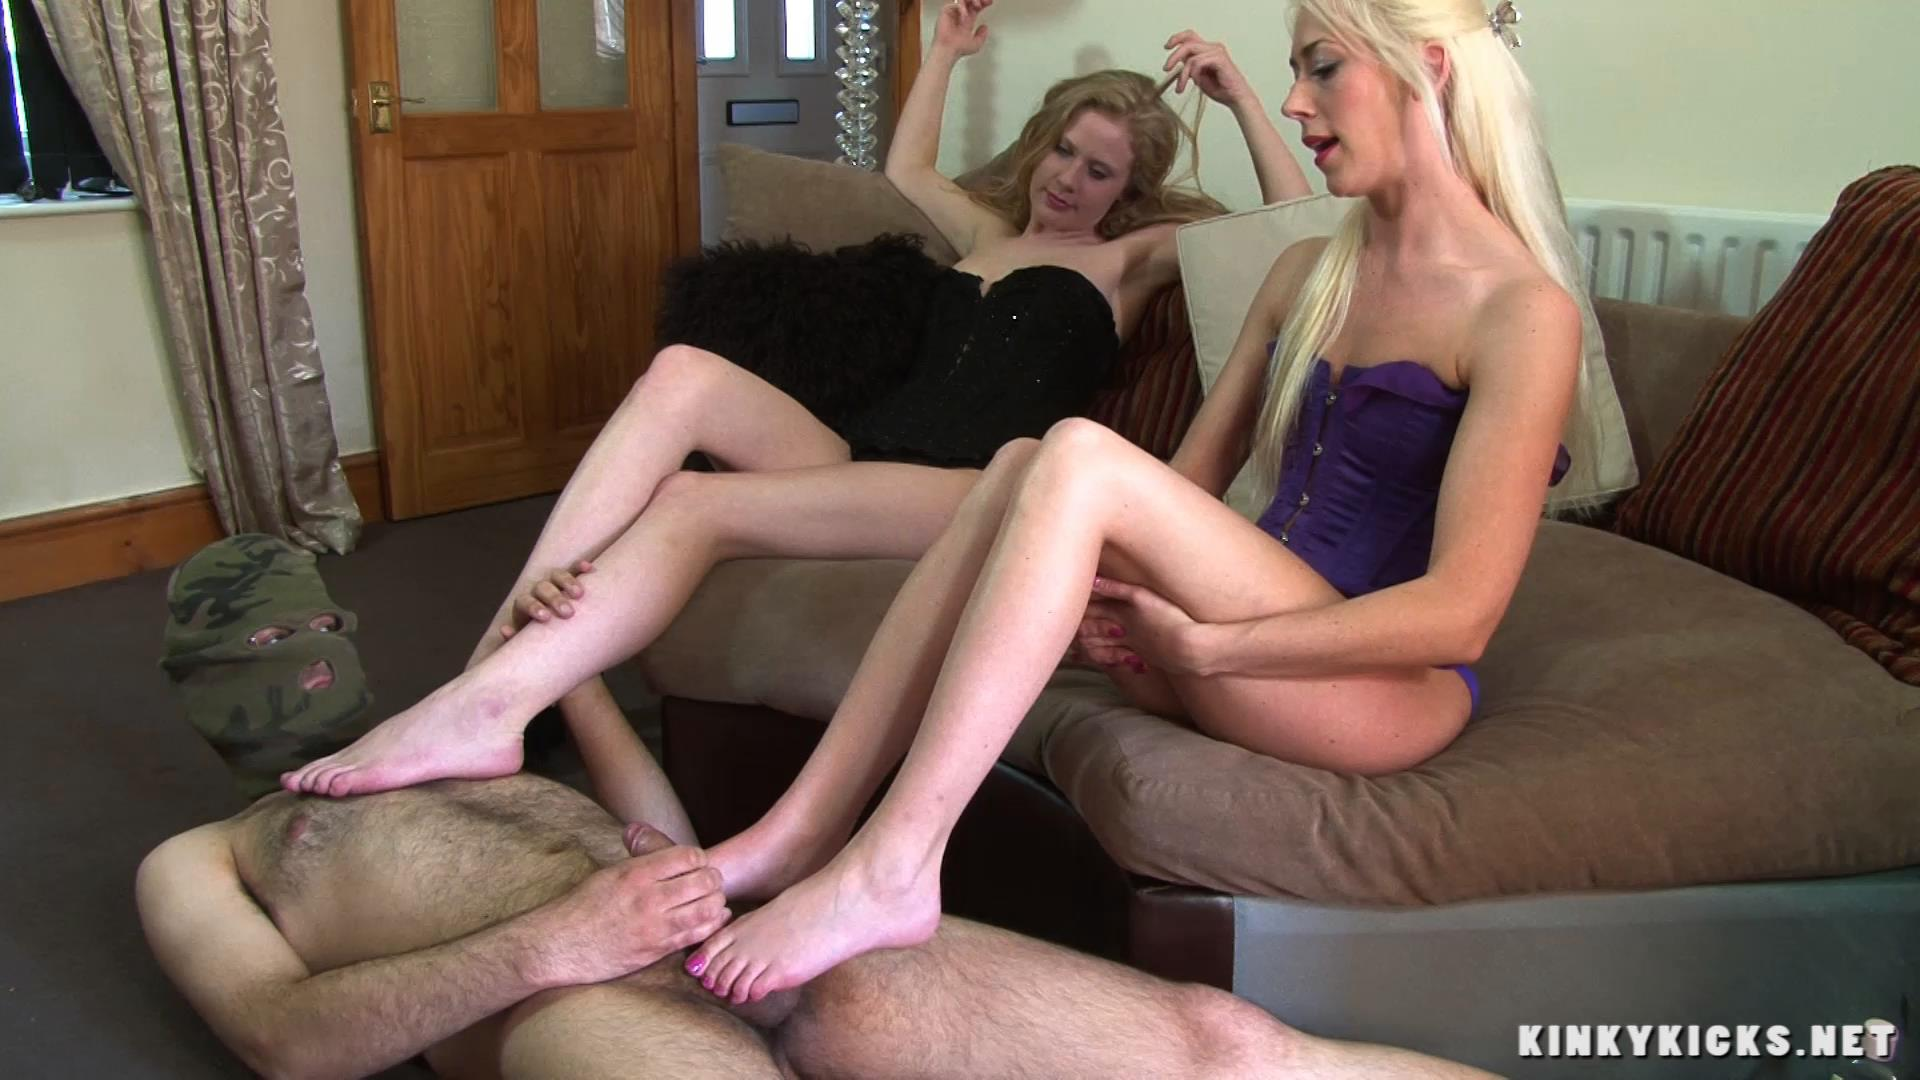 Belle, Charlotte In Scene: Podicure Pet - KINKYKICKS - FULL HD/1080p/MP4